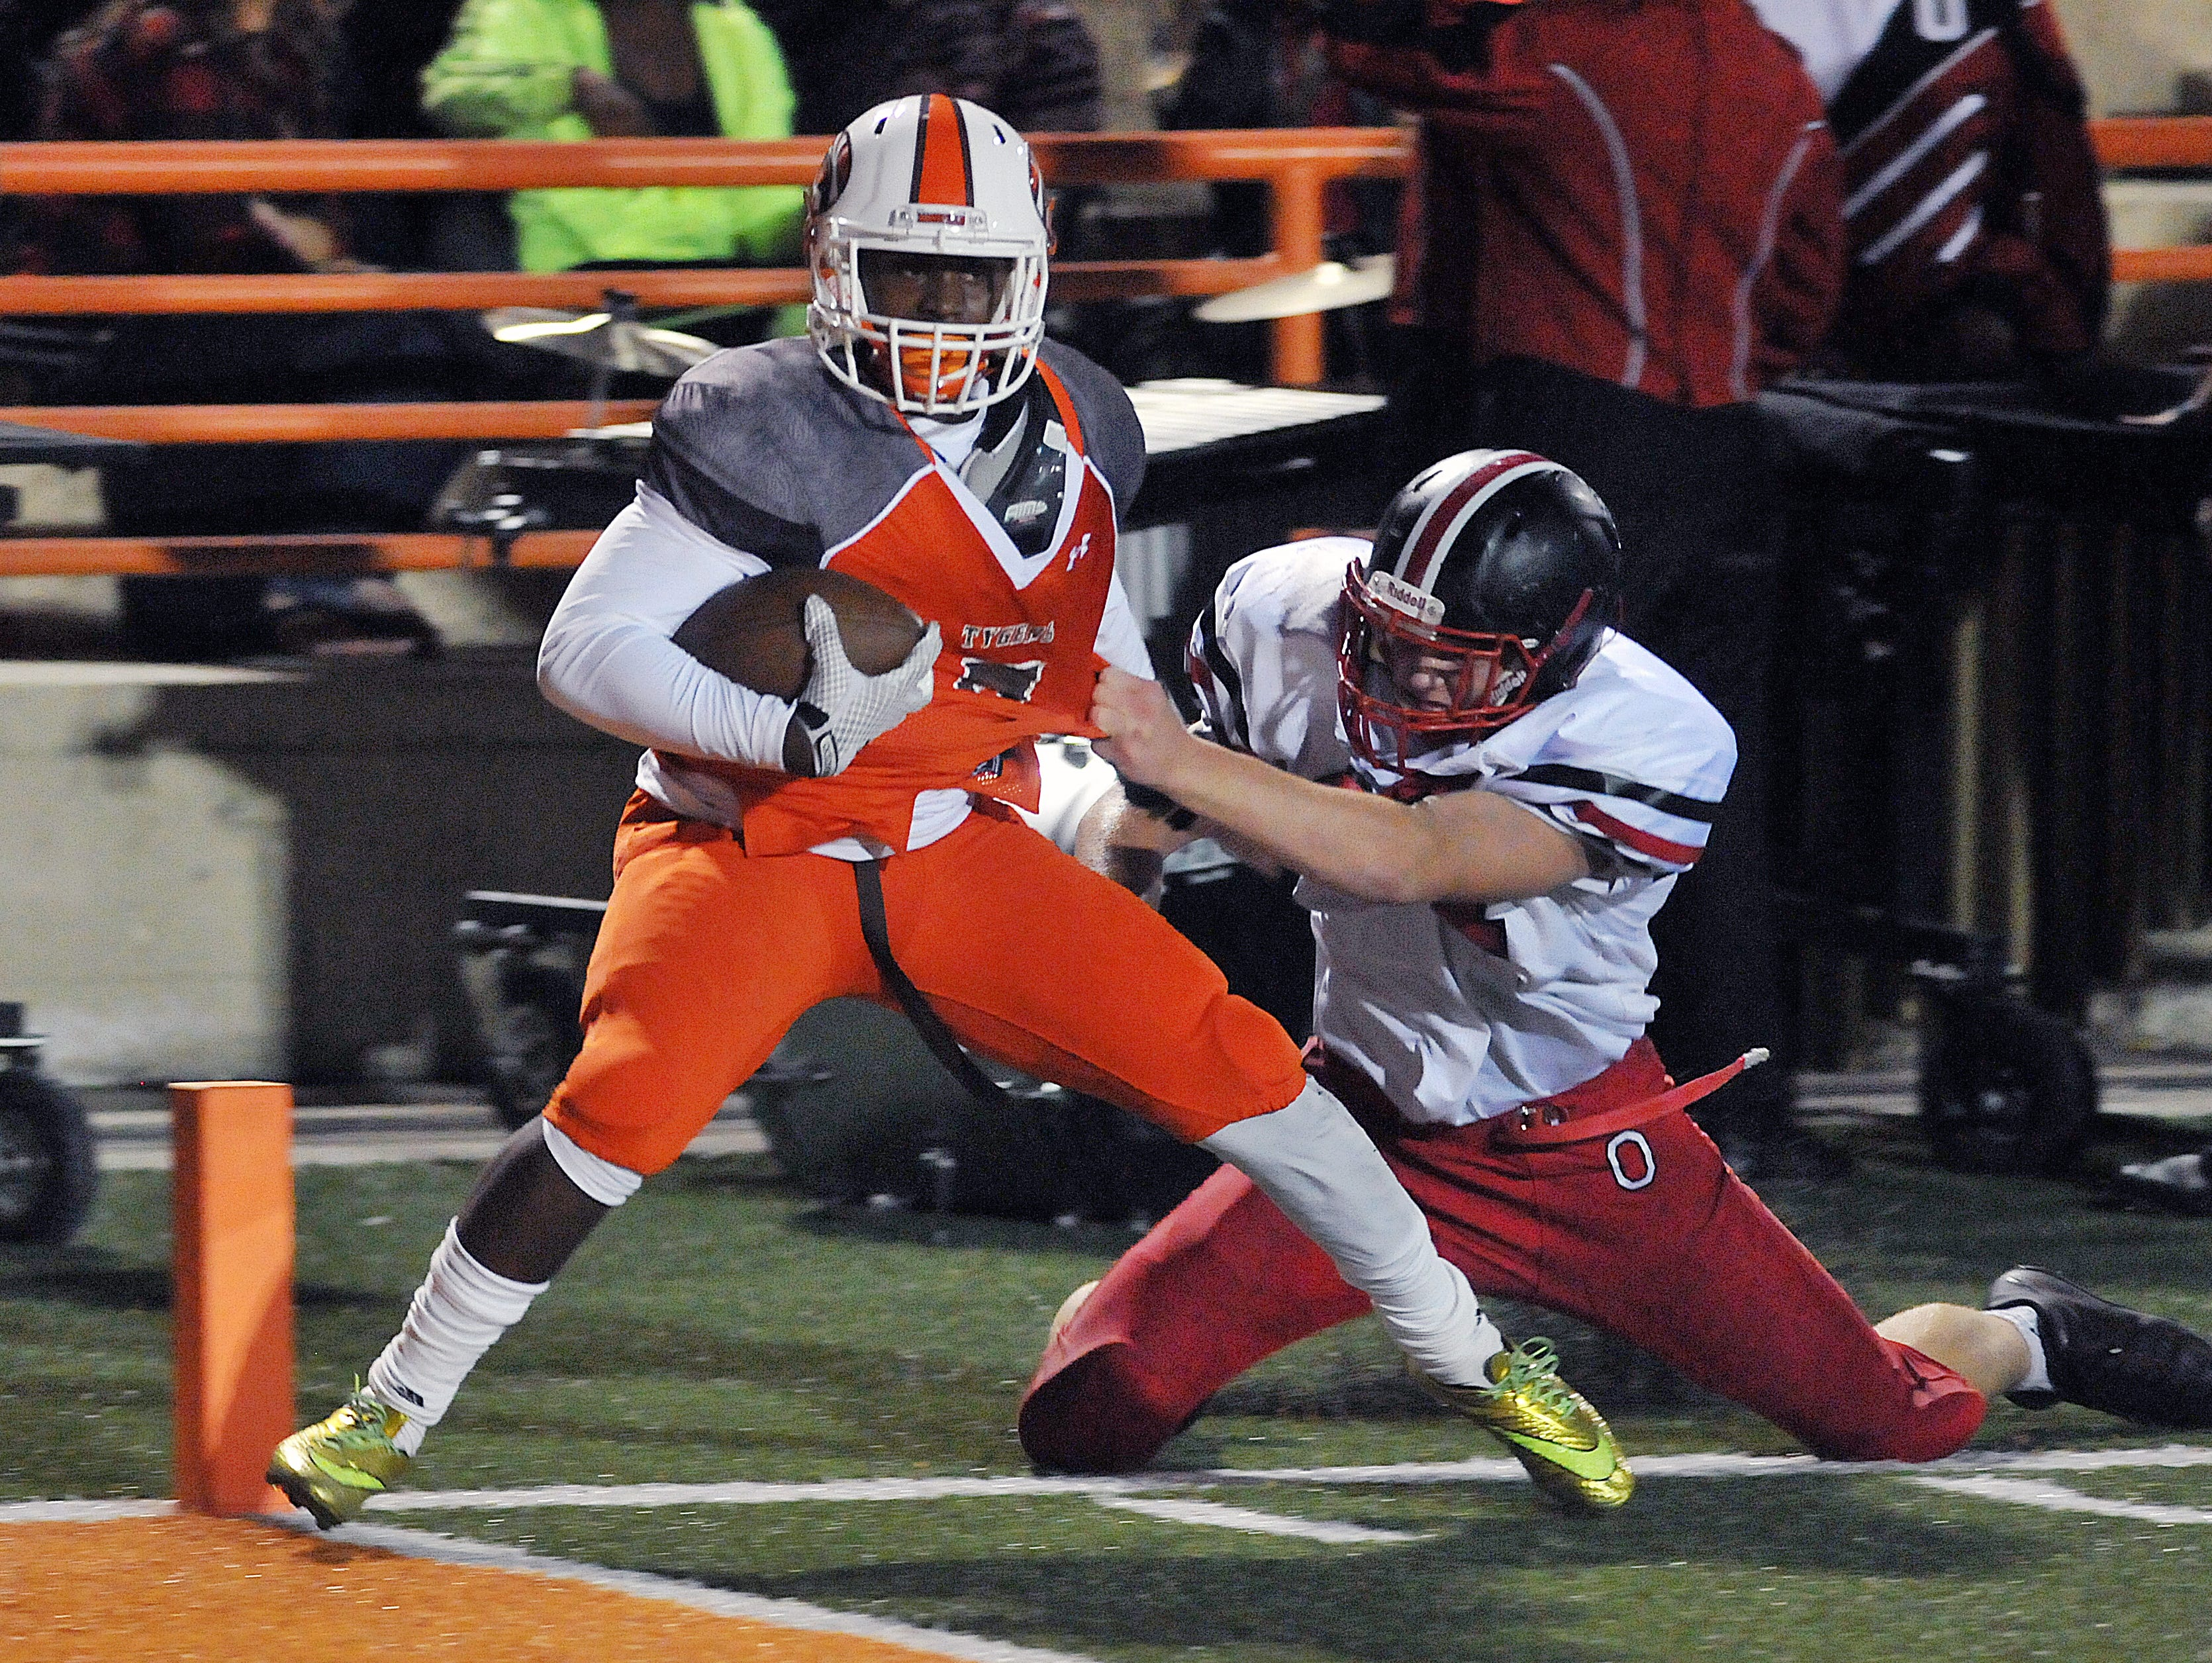 Mansfield Senior's Sa'Qunn Johnson gets into the end zone during their game Friday night against Orrville.